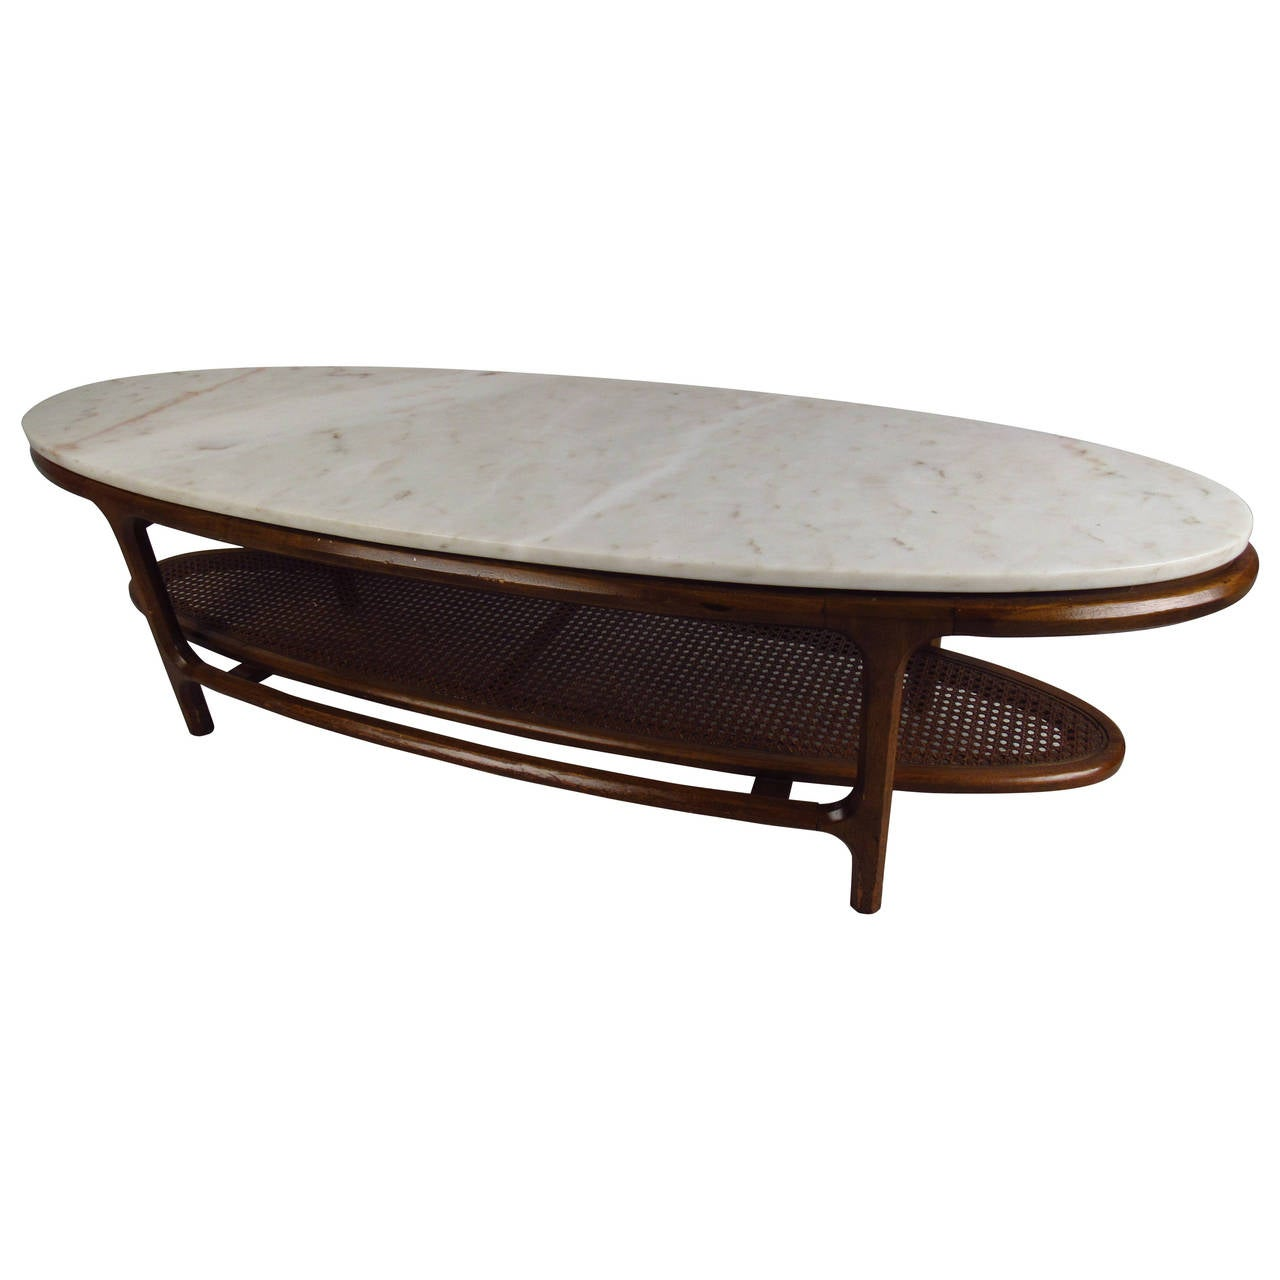 Mid century modern marble top coffee table with cane shelf for sale at 1stdibs Coffee tables with marble tops